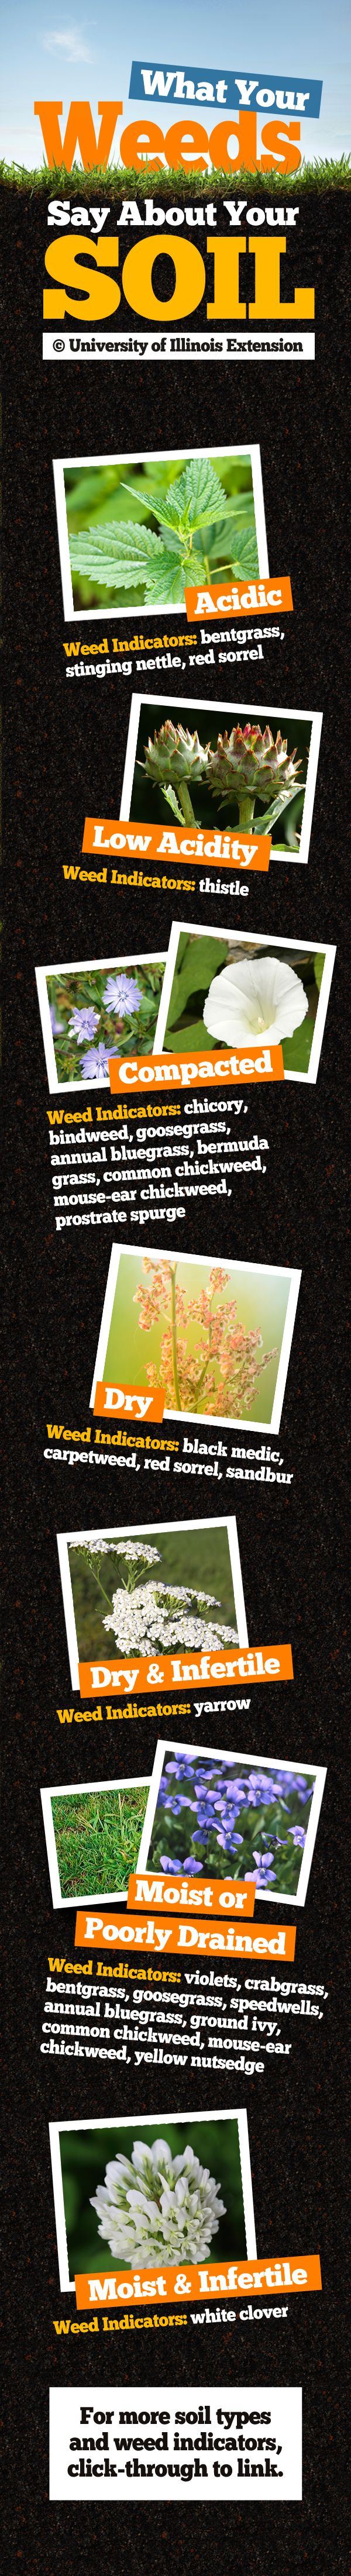 What Your Weeds Say About Your Soil. Want to learn more about soil testing? Check out AgSource Laboratories http://agsource.crinet.com/page298/Agronomy